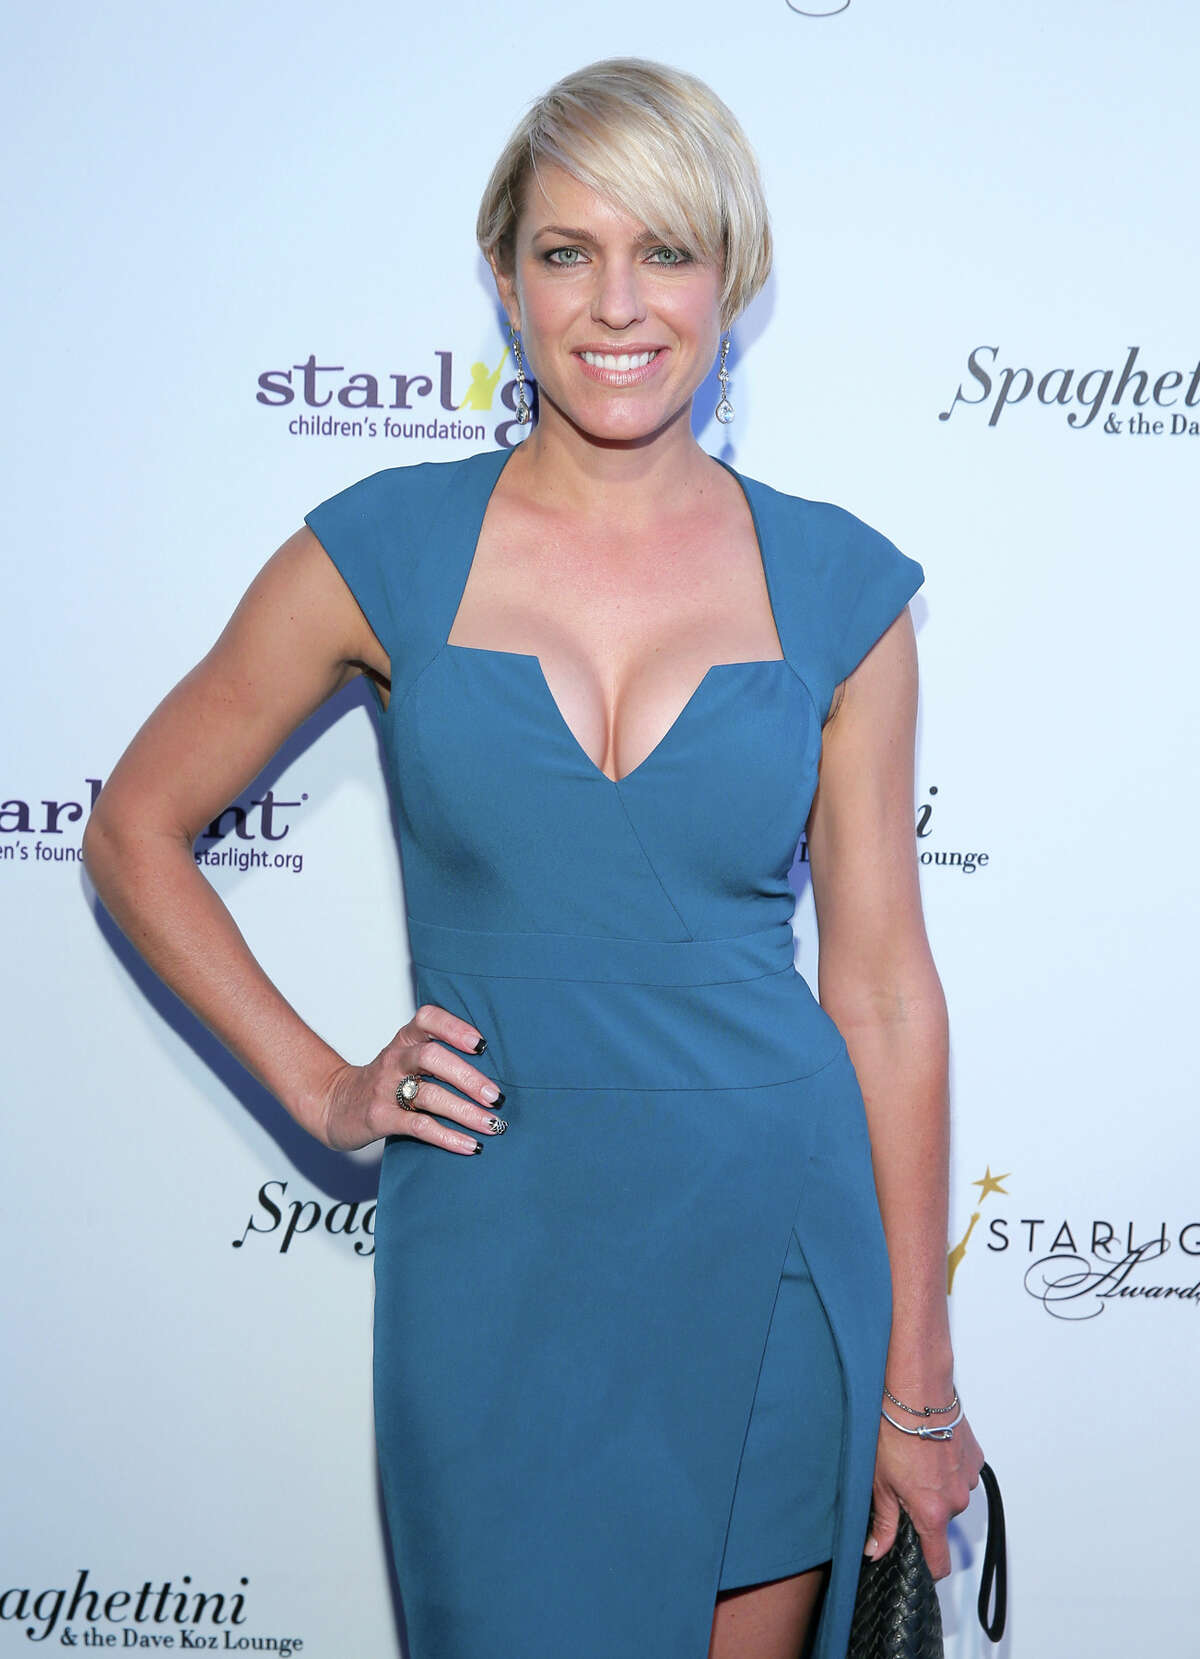 LOS ANGELES, CA - OCTOBER 23: Actress Arianne Zucker attends the 2014 Starlight Awards at Vibiana on October 23, 2014 in Los Angeles, California. (Photo by Mark Davis/Getty Images)